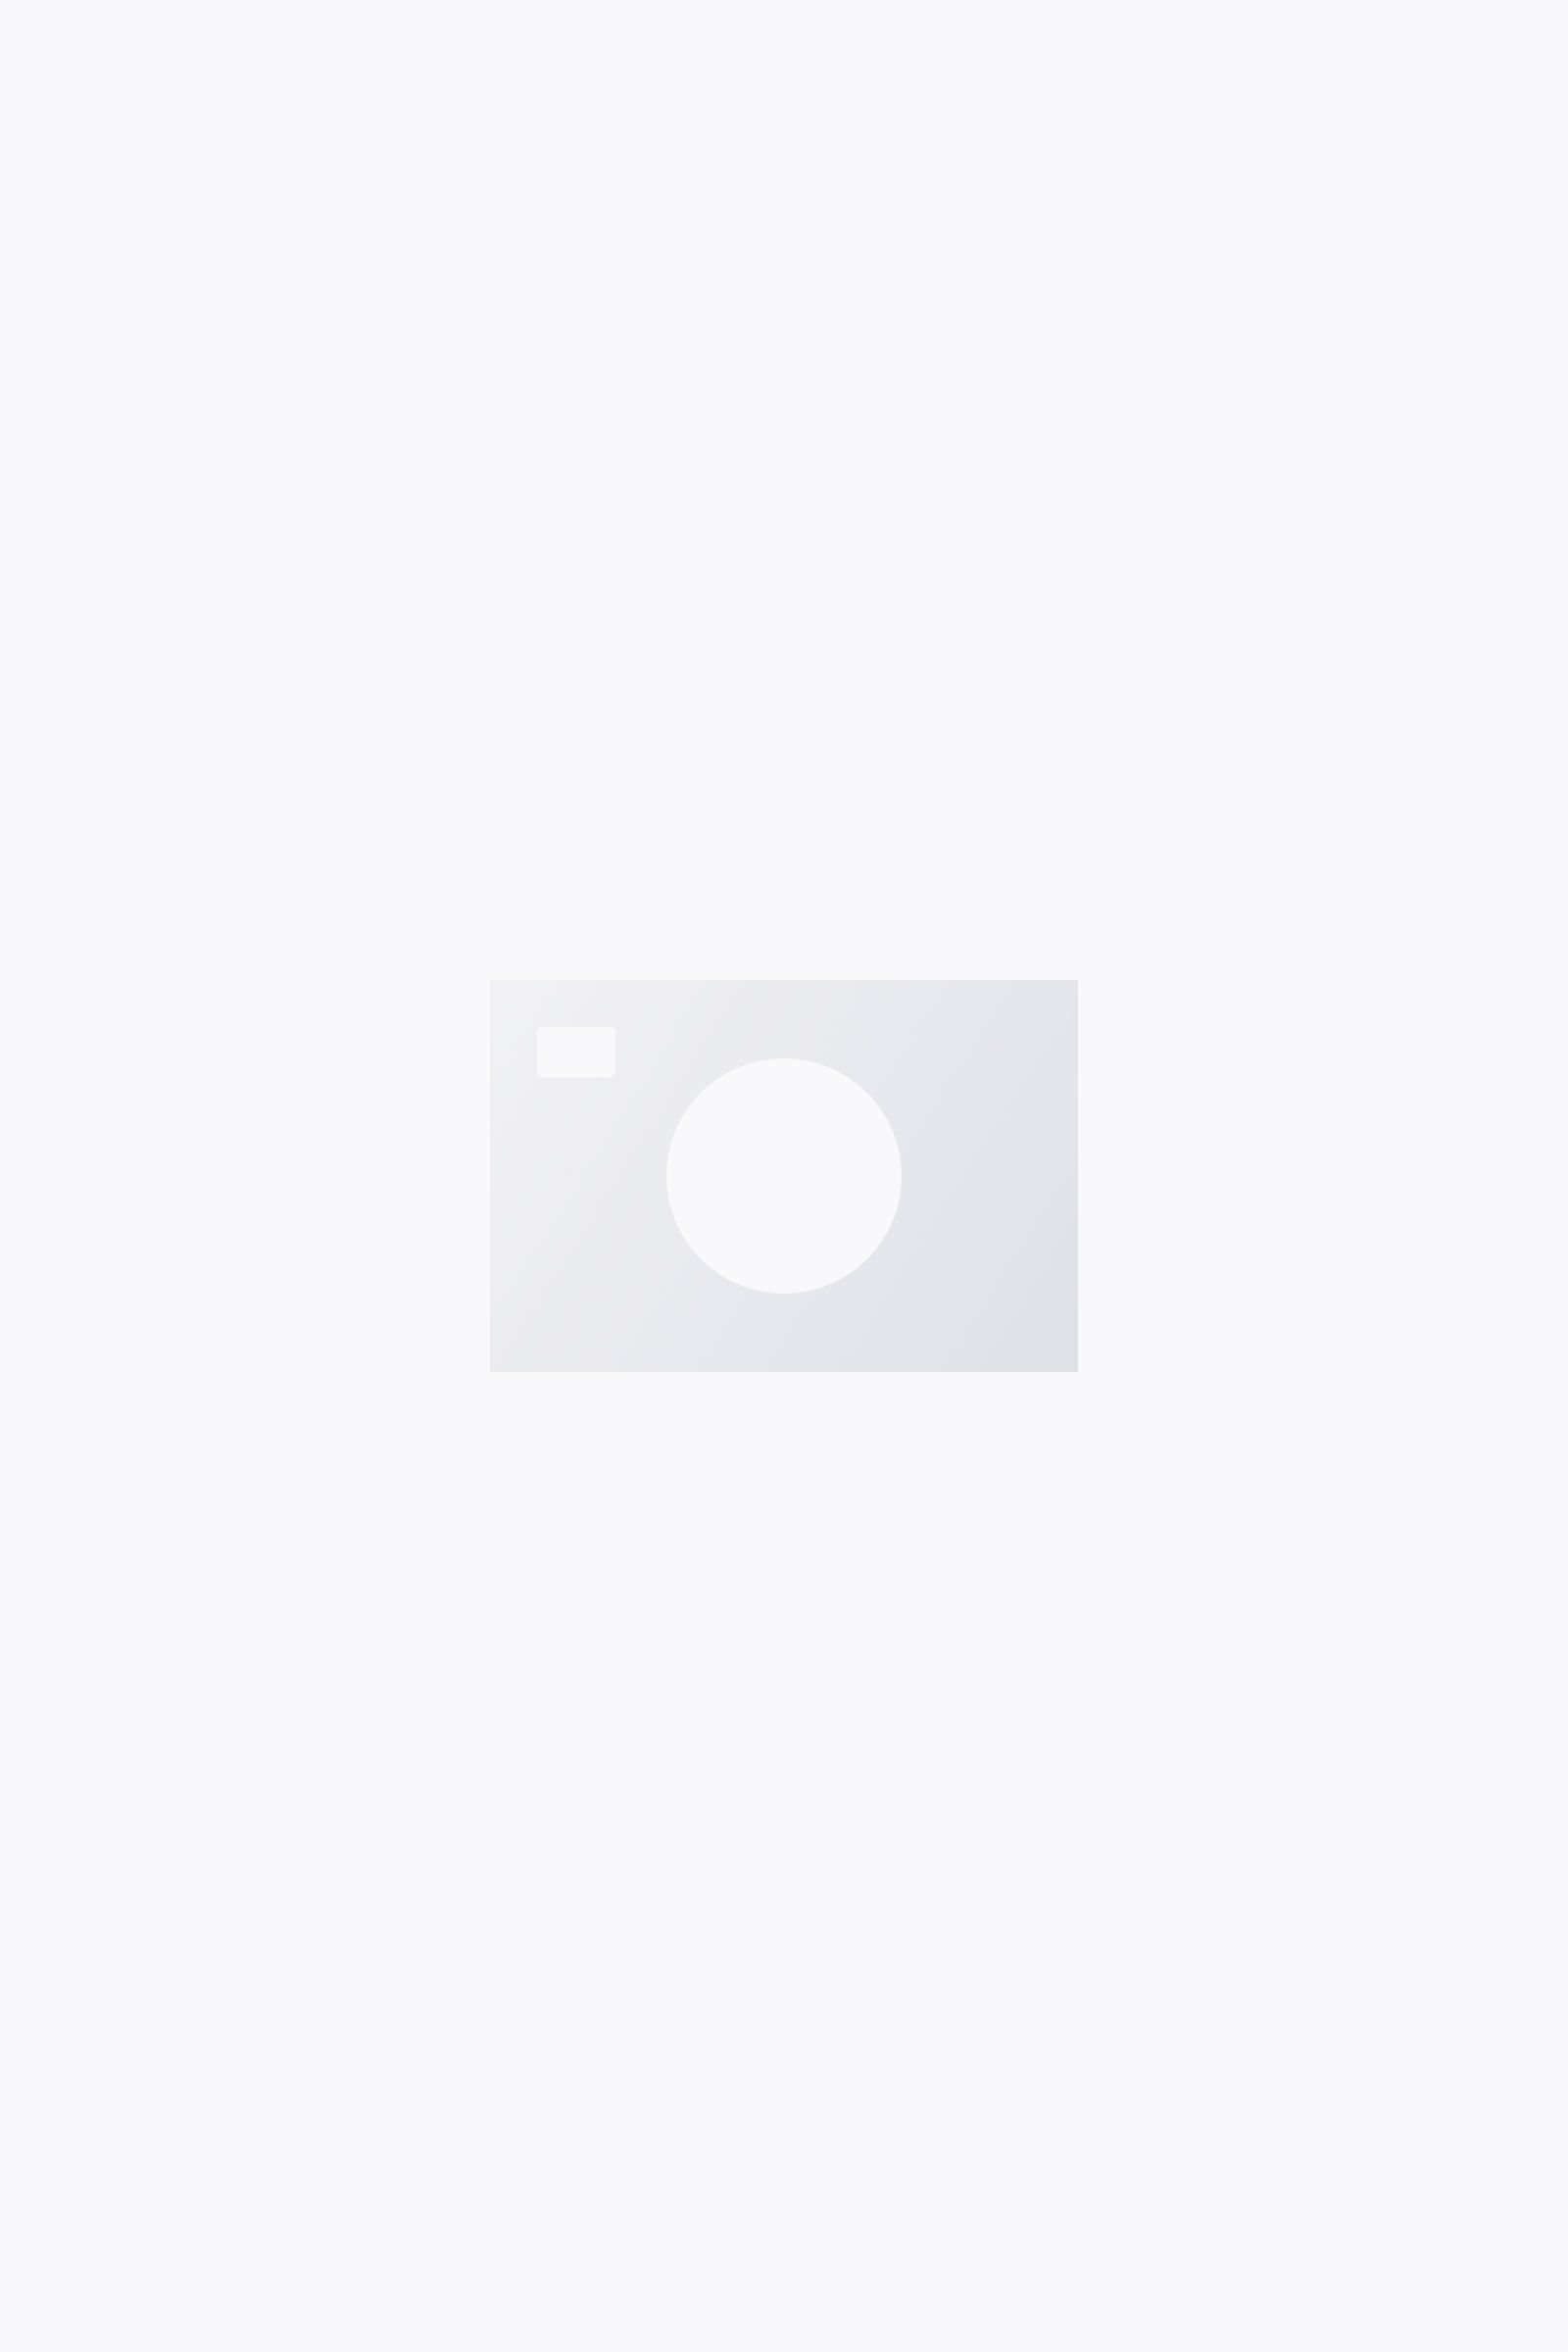 COS DRAWSTRING SEERSUCKER TROUSERS,black